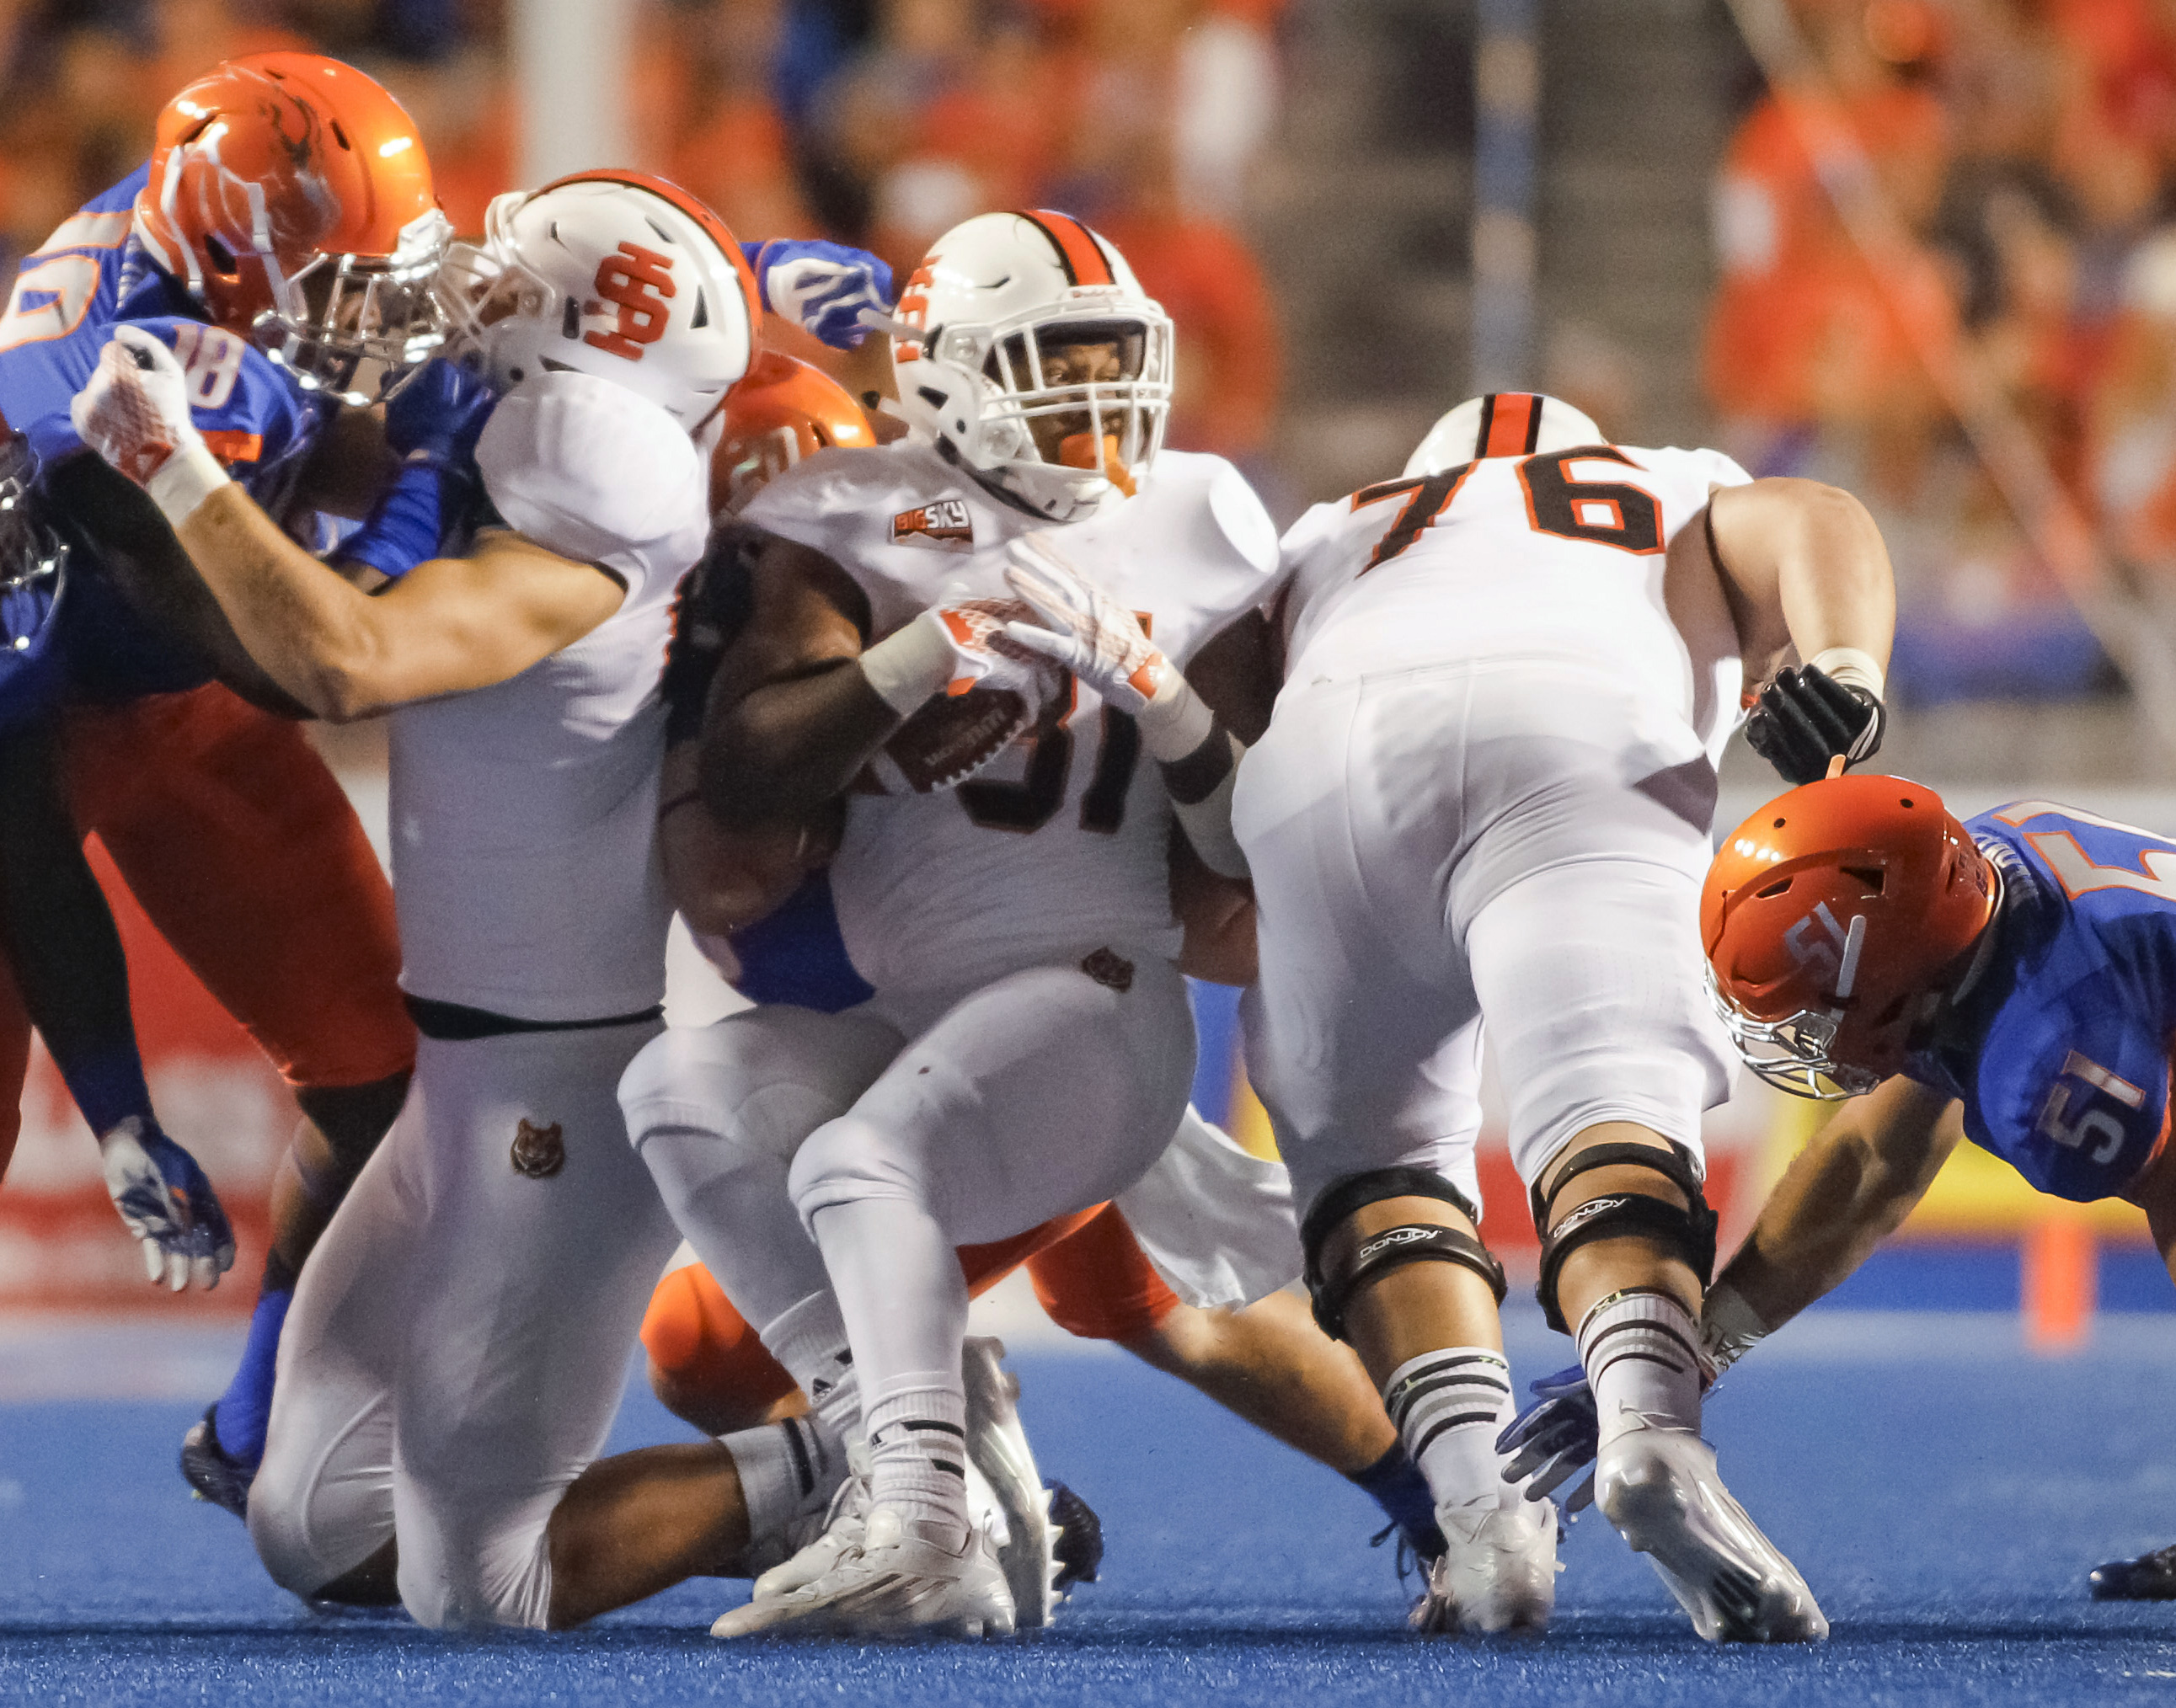 Idaho State running back Xavier Finney (31) gets spun around with the ball during the first half of an NCAA college football game against Boise State in Boise, Idaho, on Friday, Sept. 18, 2015. (AP Photo/Otto Kitsinger)